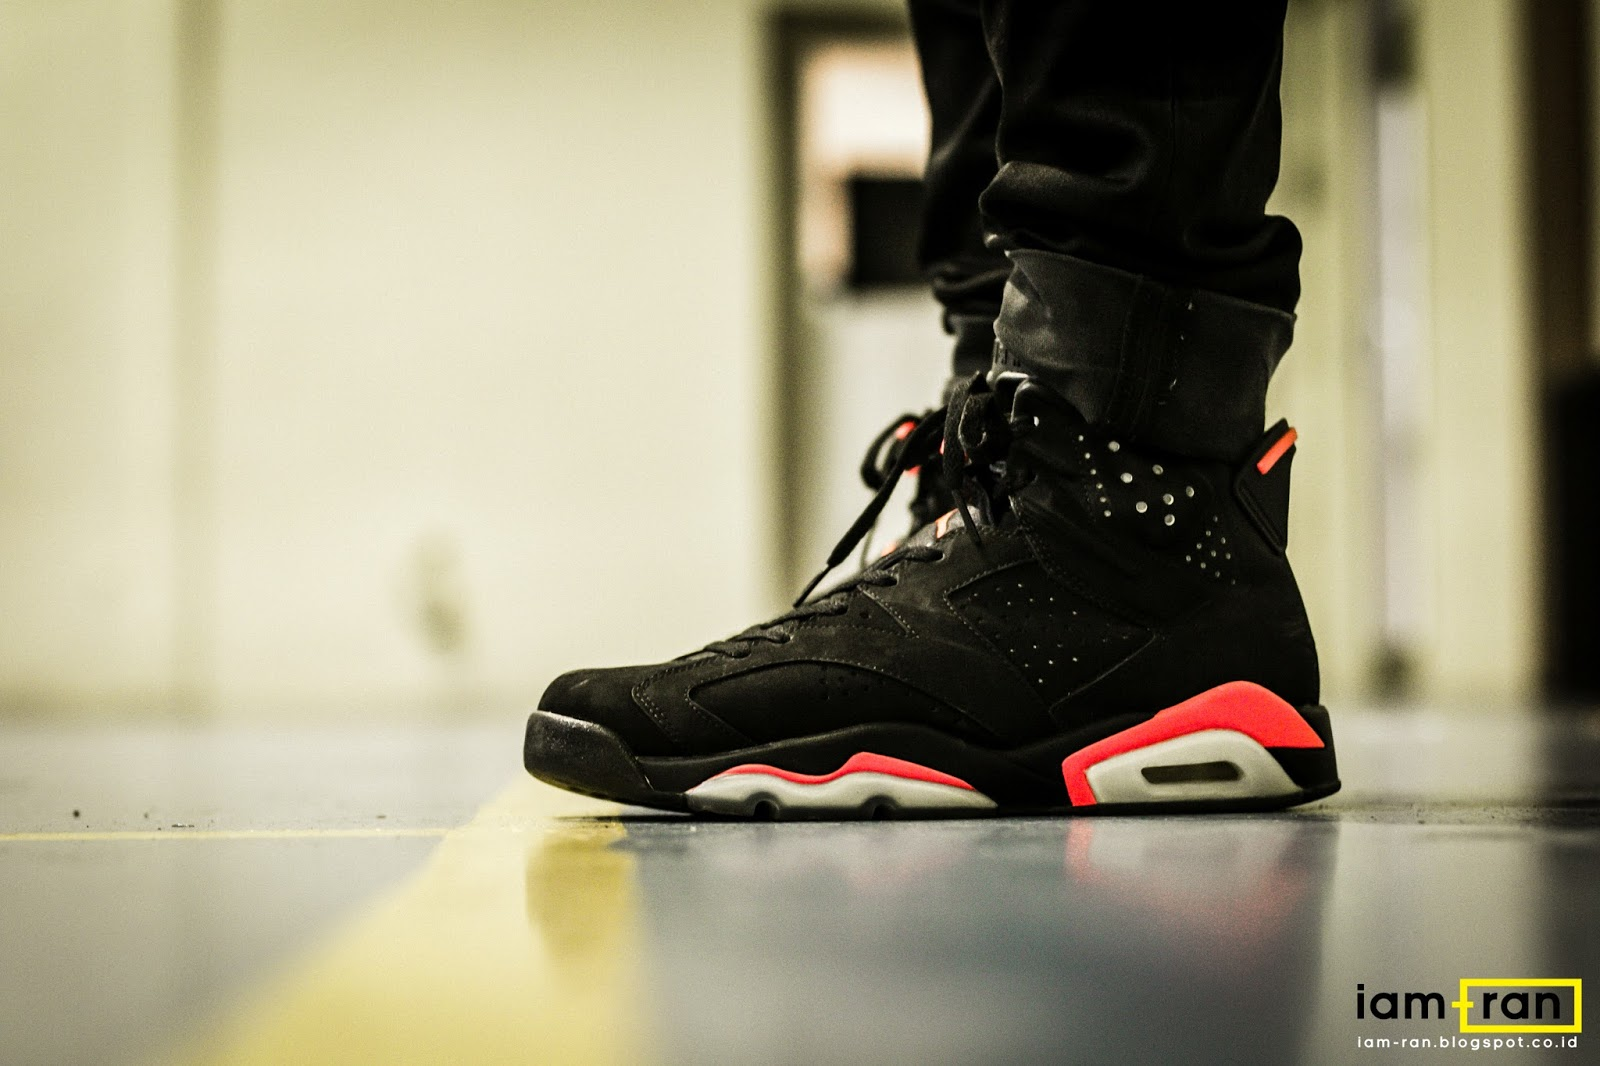 promo code ba297 0d5f9 IAM-RAN: ON FEET : Vitra -Nike Air Jordan 6 Infrared